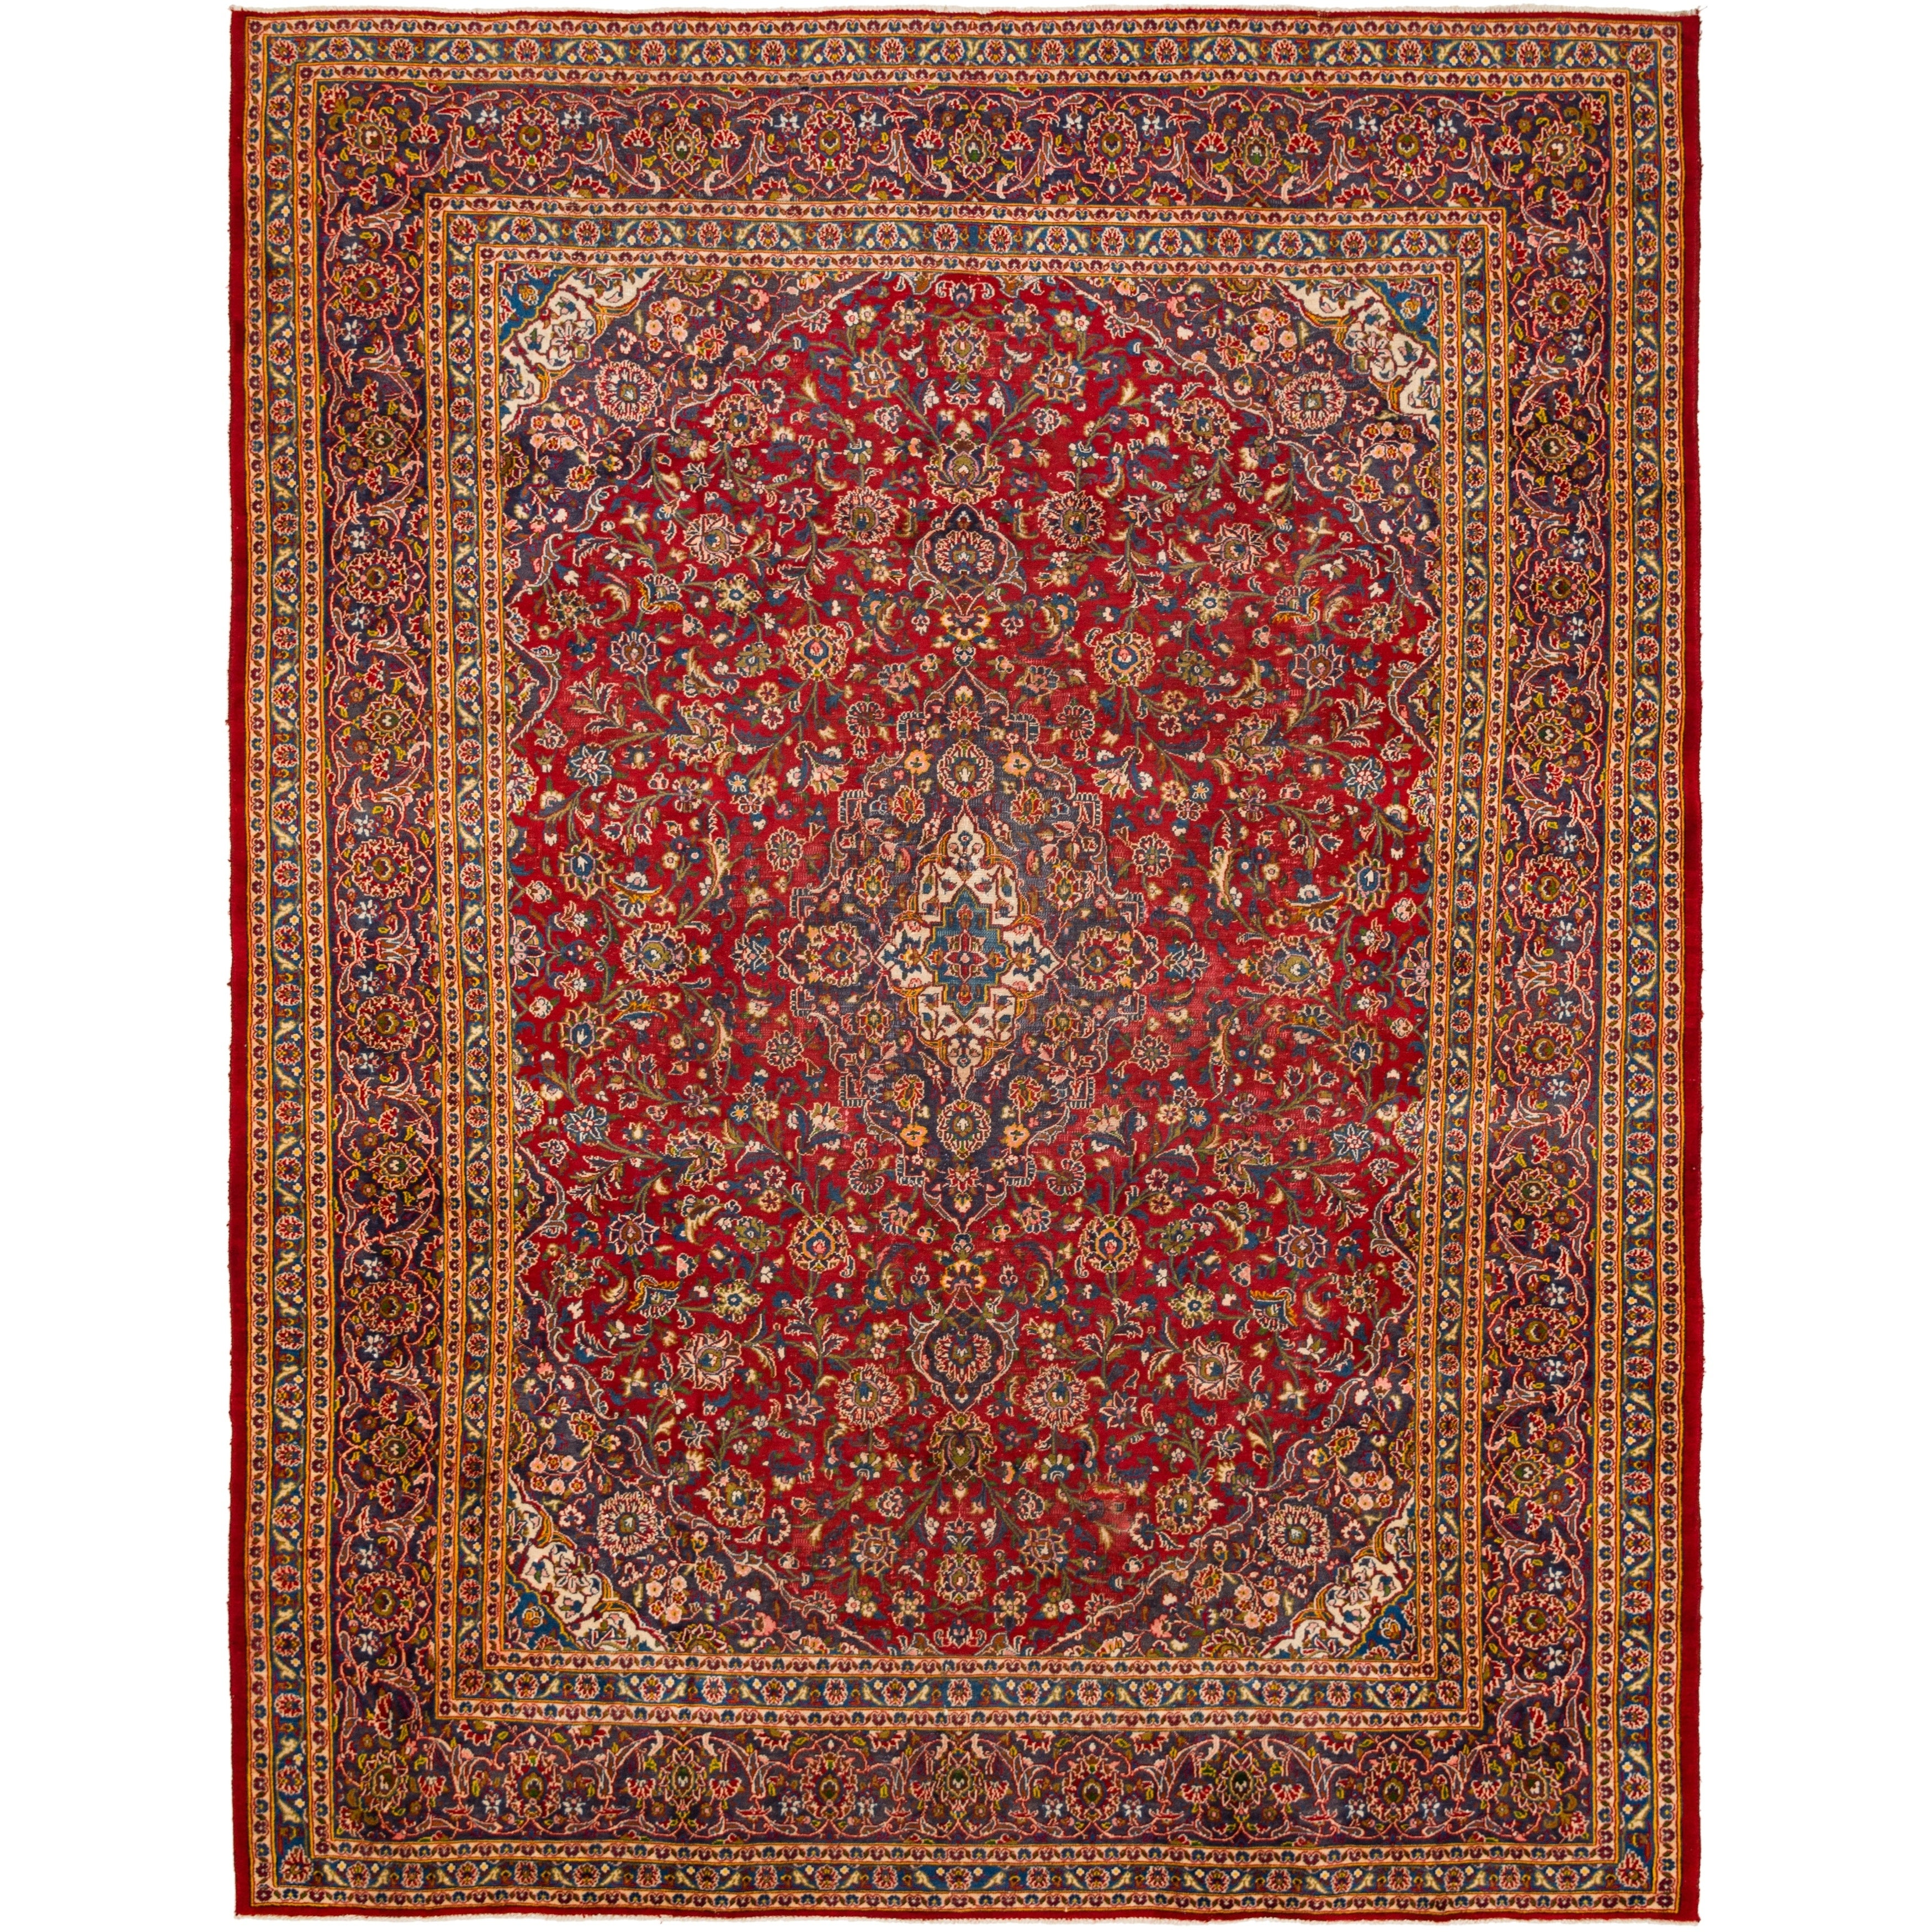 Hand Knotted Kashan Semi Antique Wool Area Rug - 9 6 x 12 6 (Red - 9 6 x 12 6)